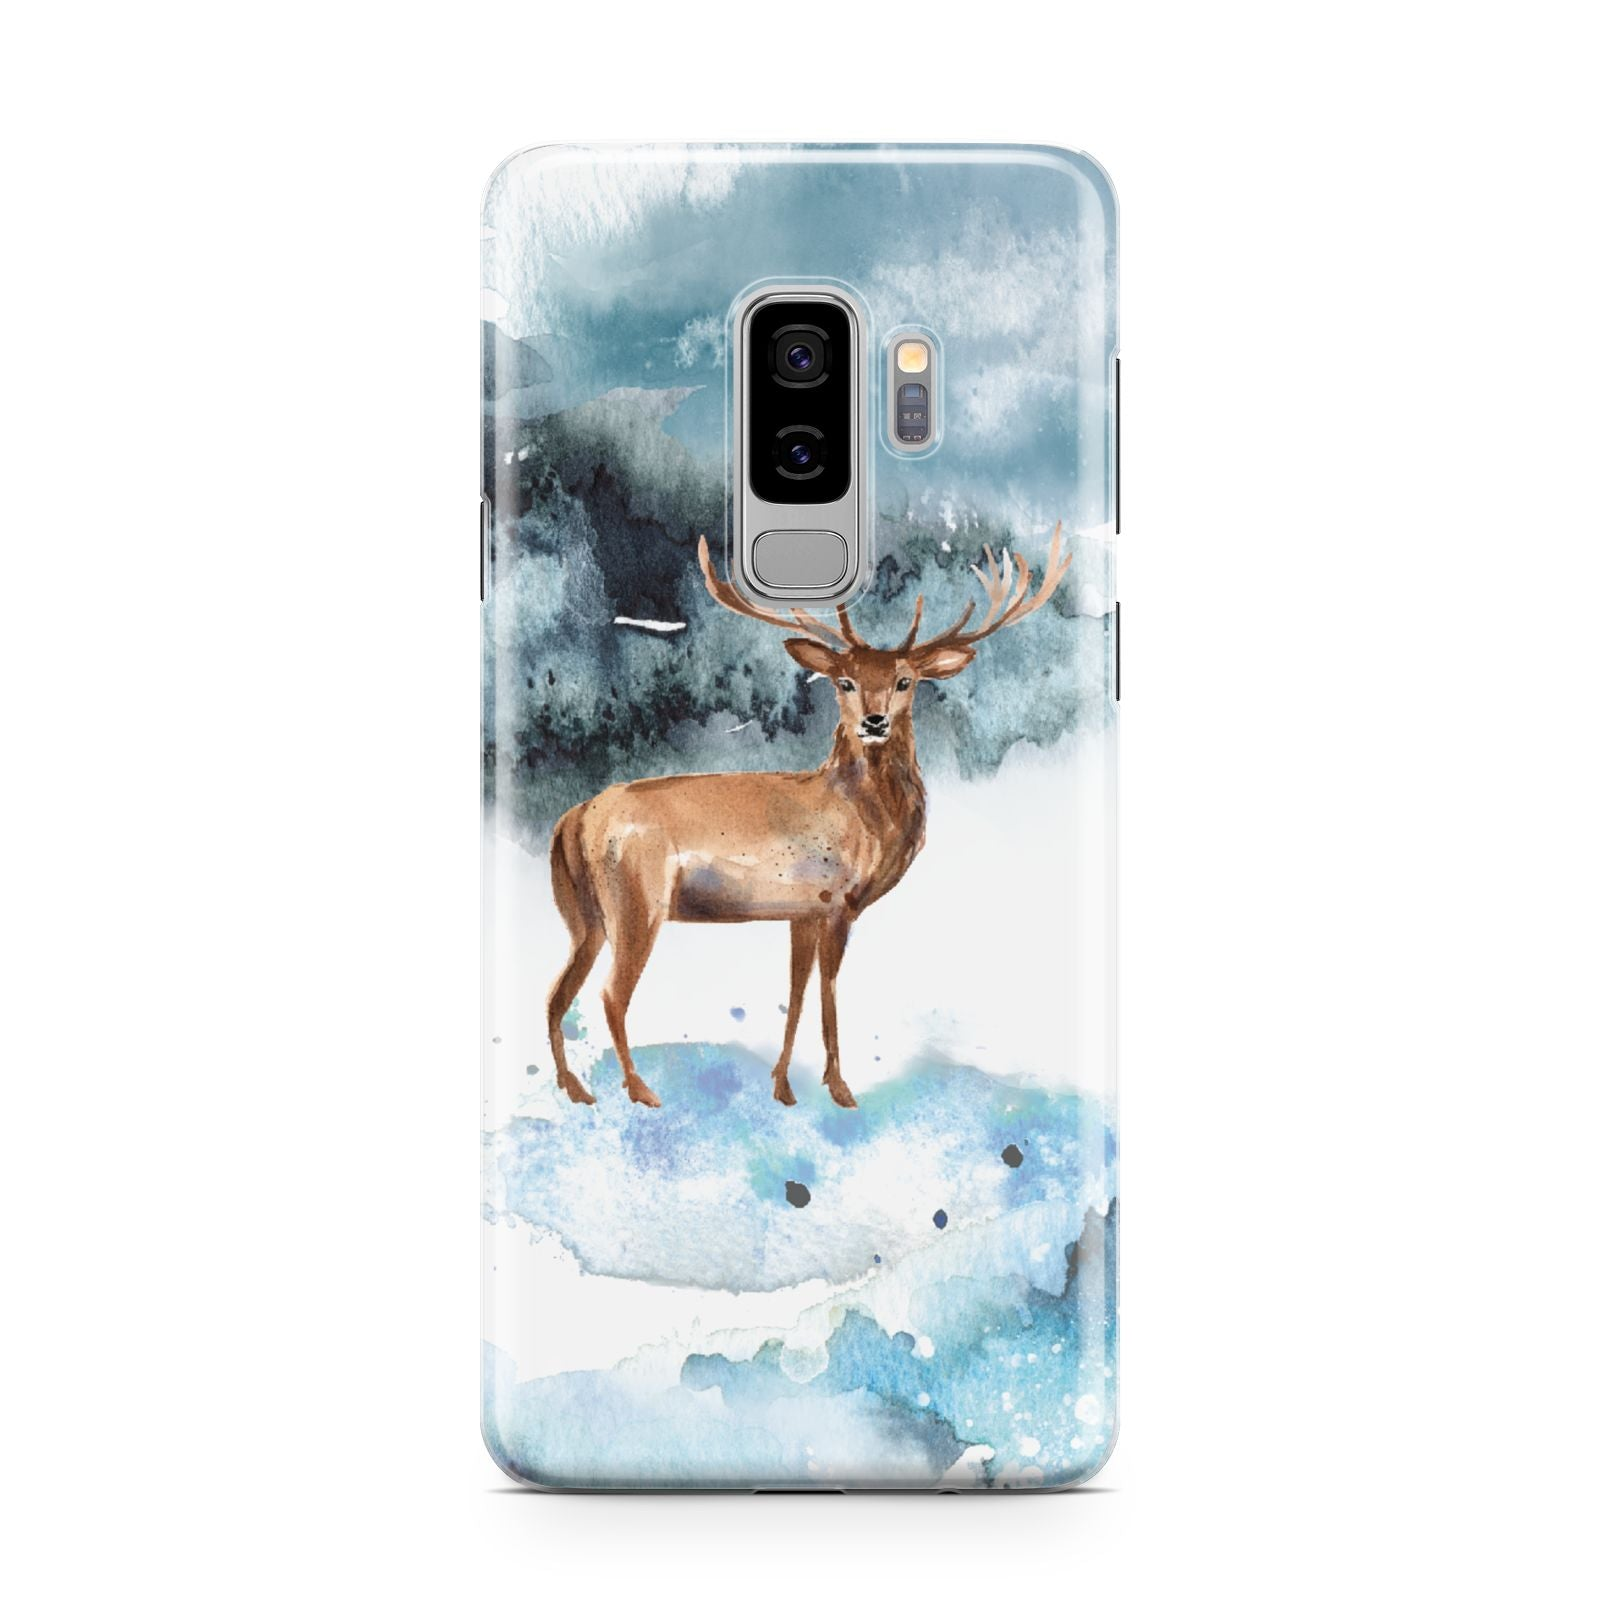 Christmas Winter Stag Samsung Galaxy S9 Plus Case on Silver phone